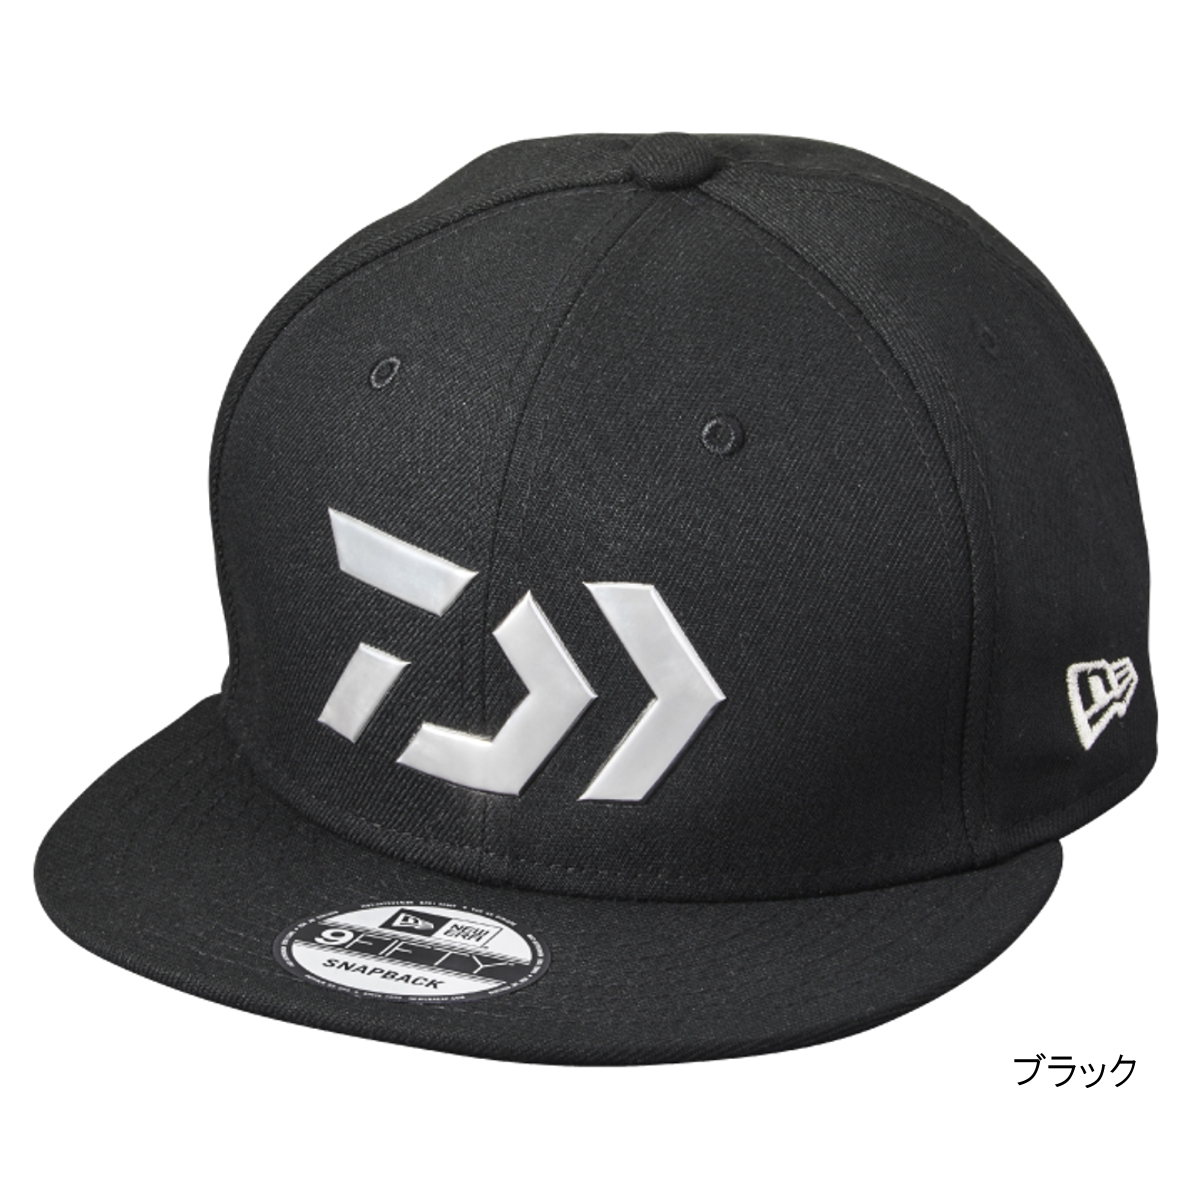 31ddcbce6483 Daiwa Gore-Tex 9FIFTY Collaboration with NEW ERA DC-1108N-free black ...